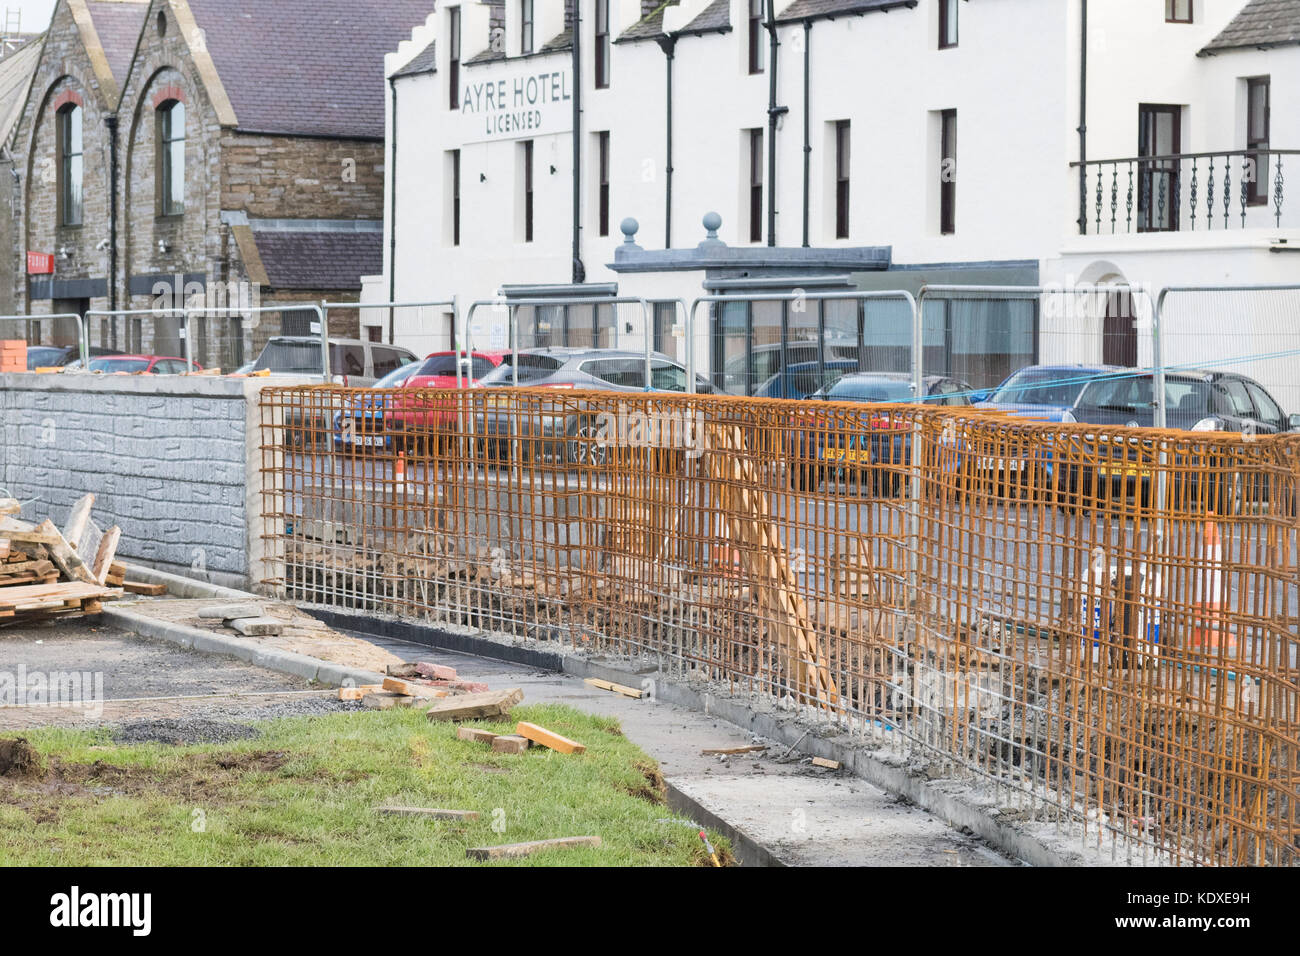 building constructing Kirkwall Harbour reinforced concrete flood wall, Kirkwall, Orkney, Scotland, UK - Stock Image